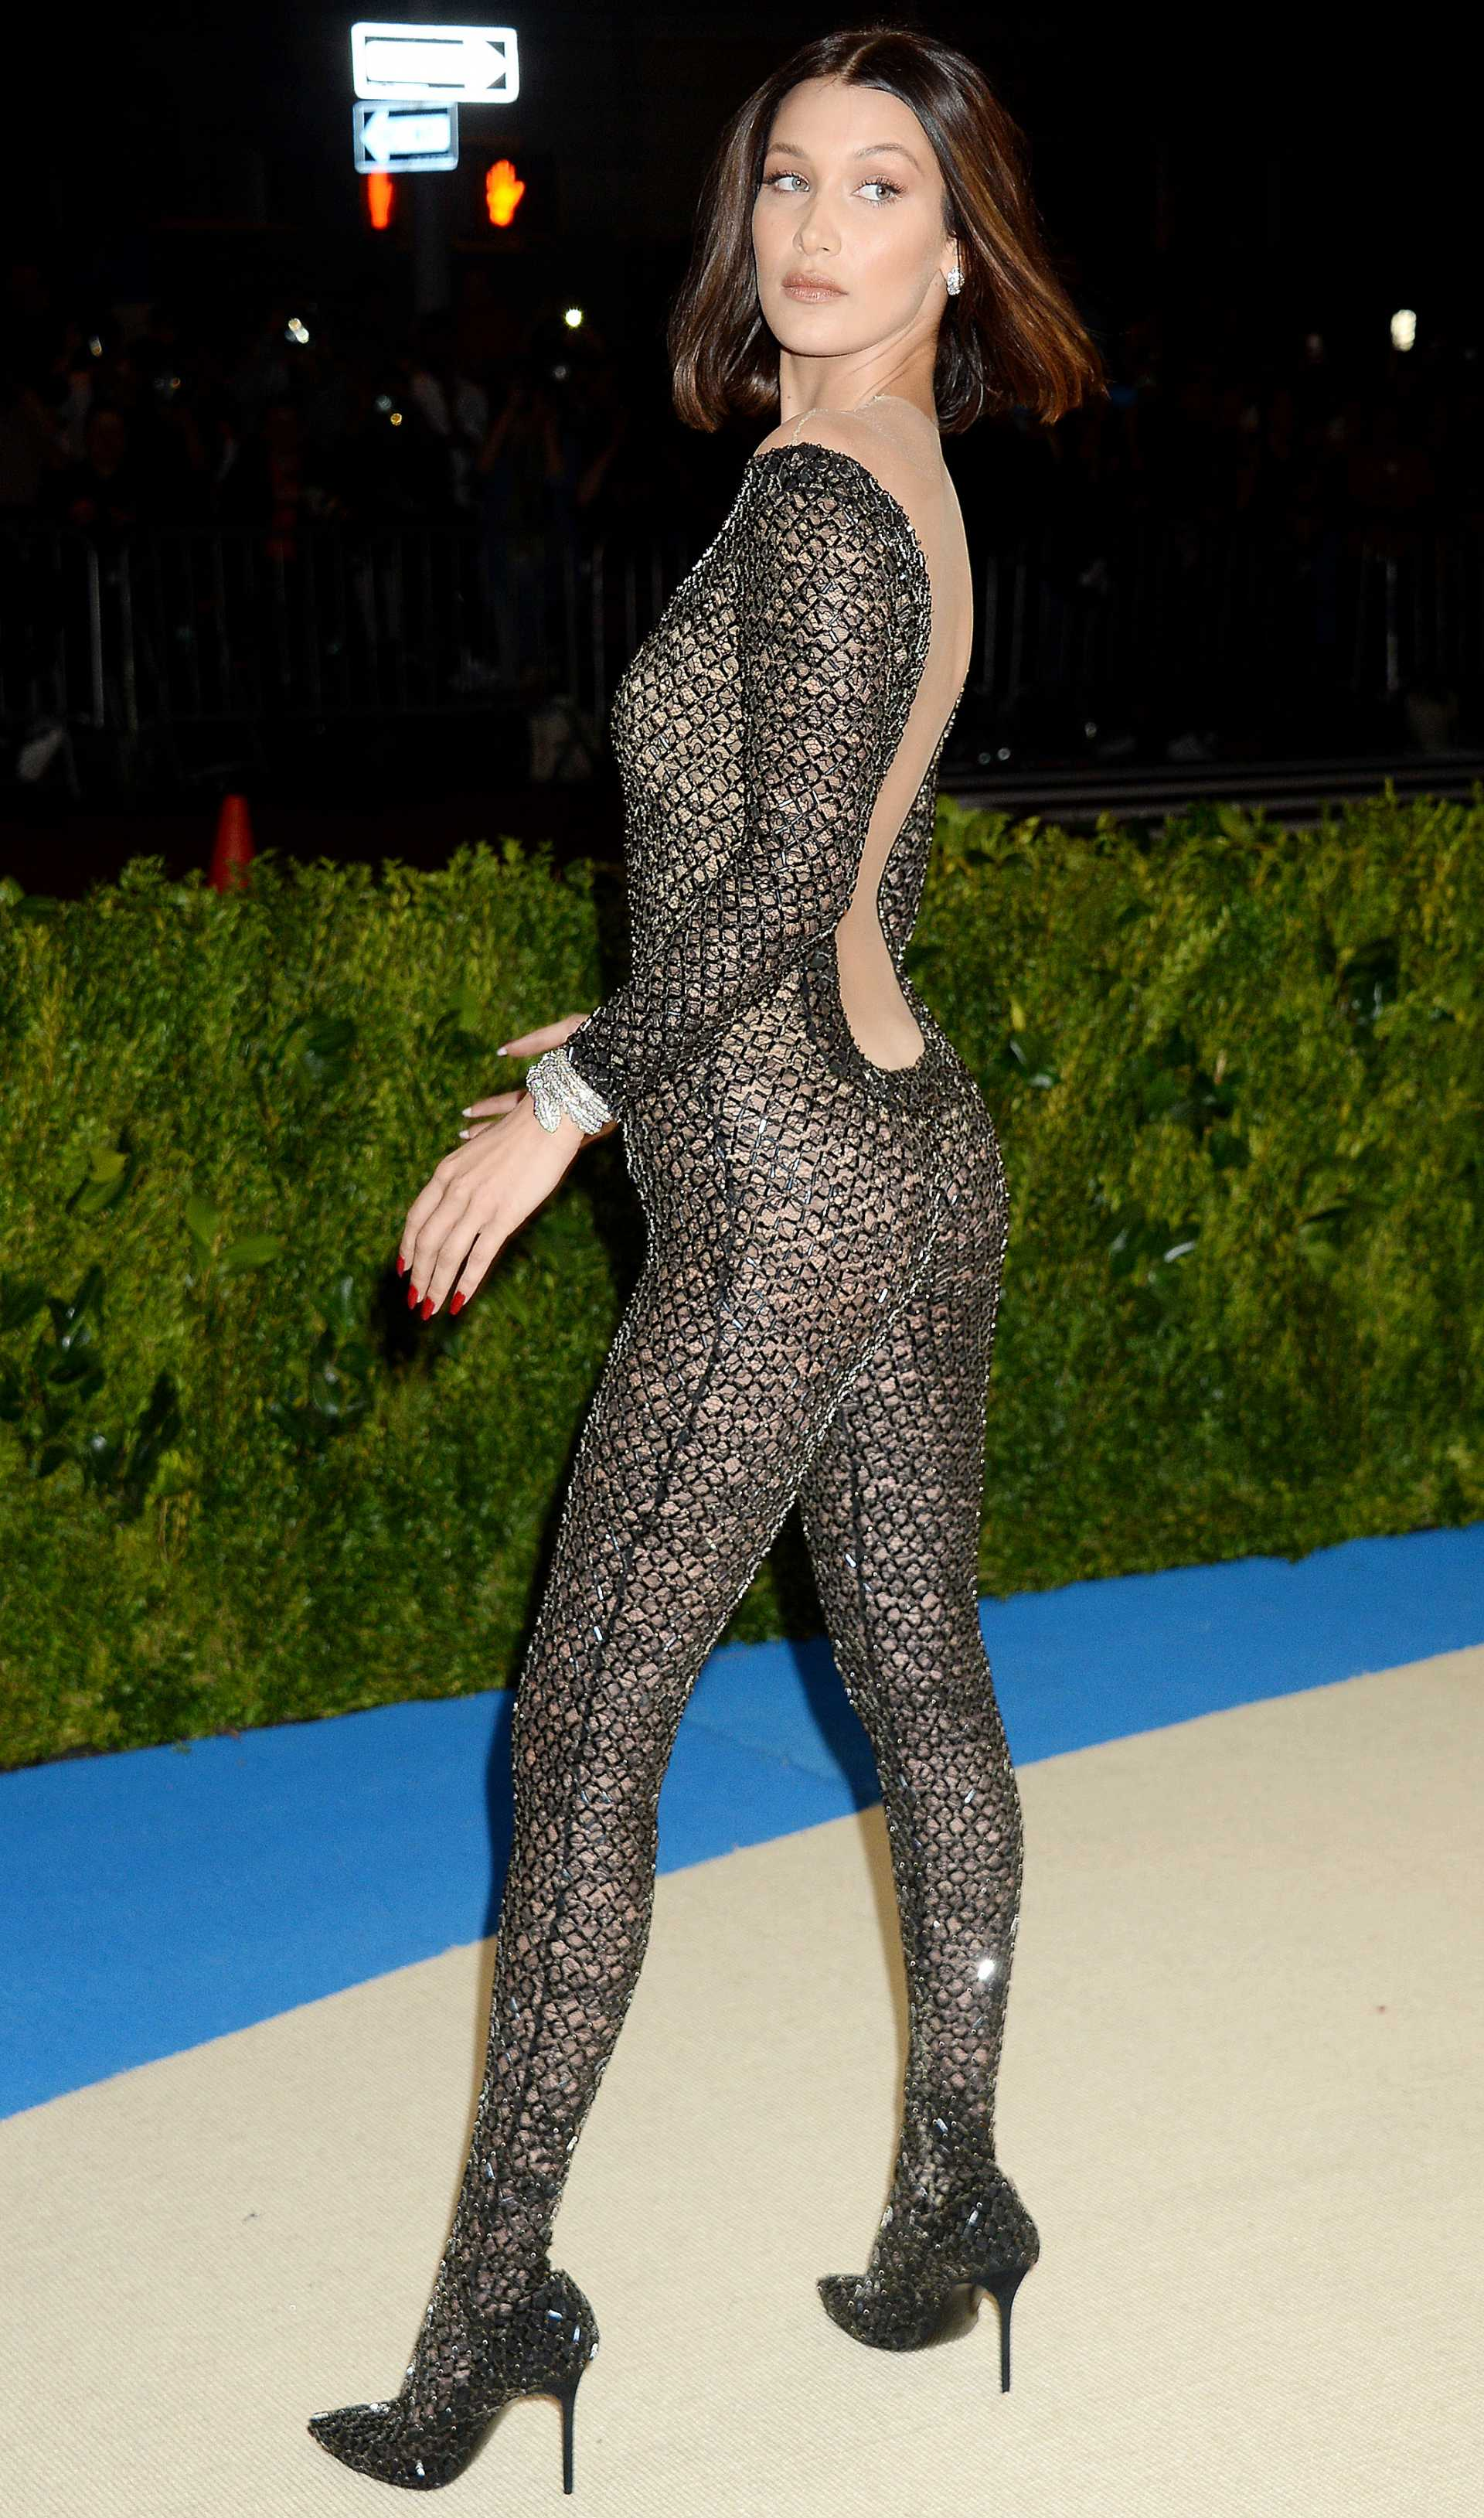 Bella Hadid 23 SAWFIRST Hot Celebrity Pictures